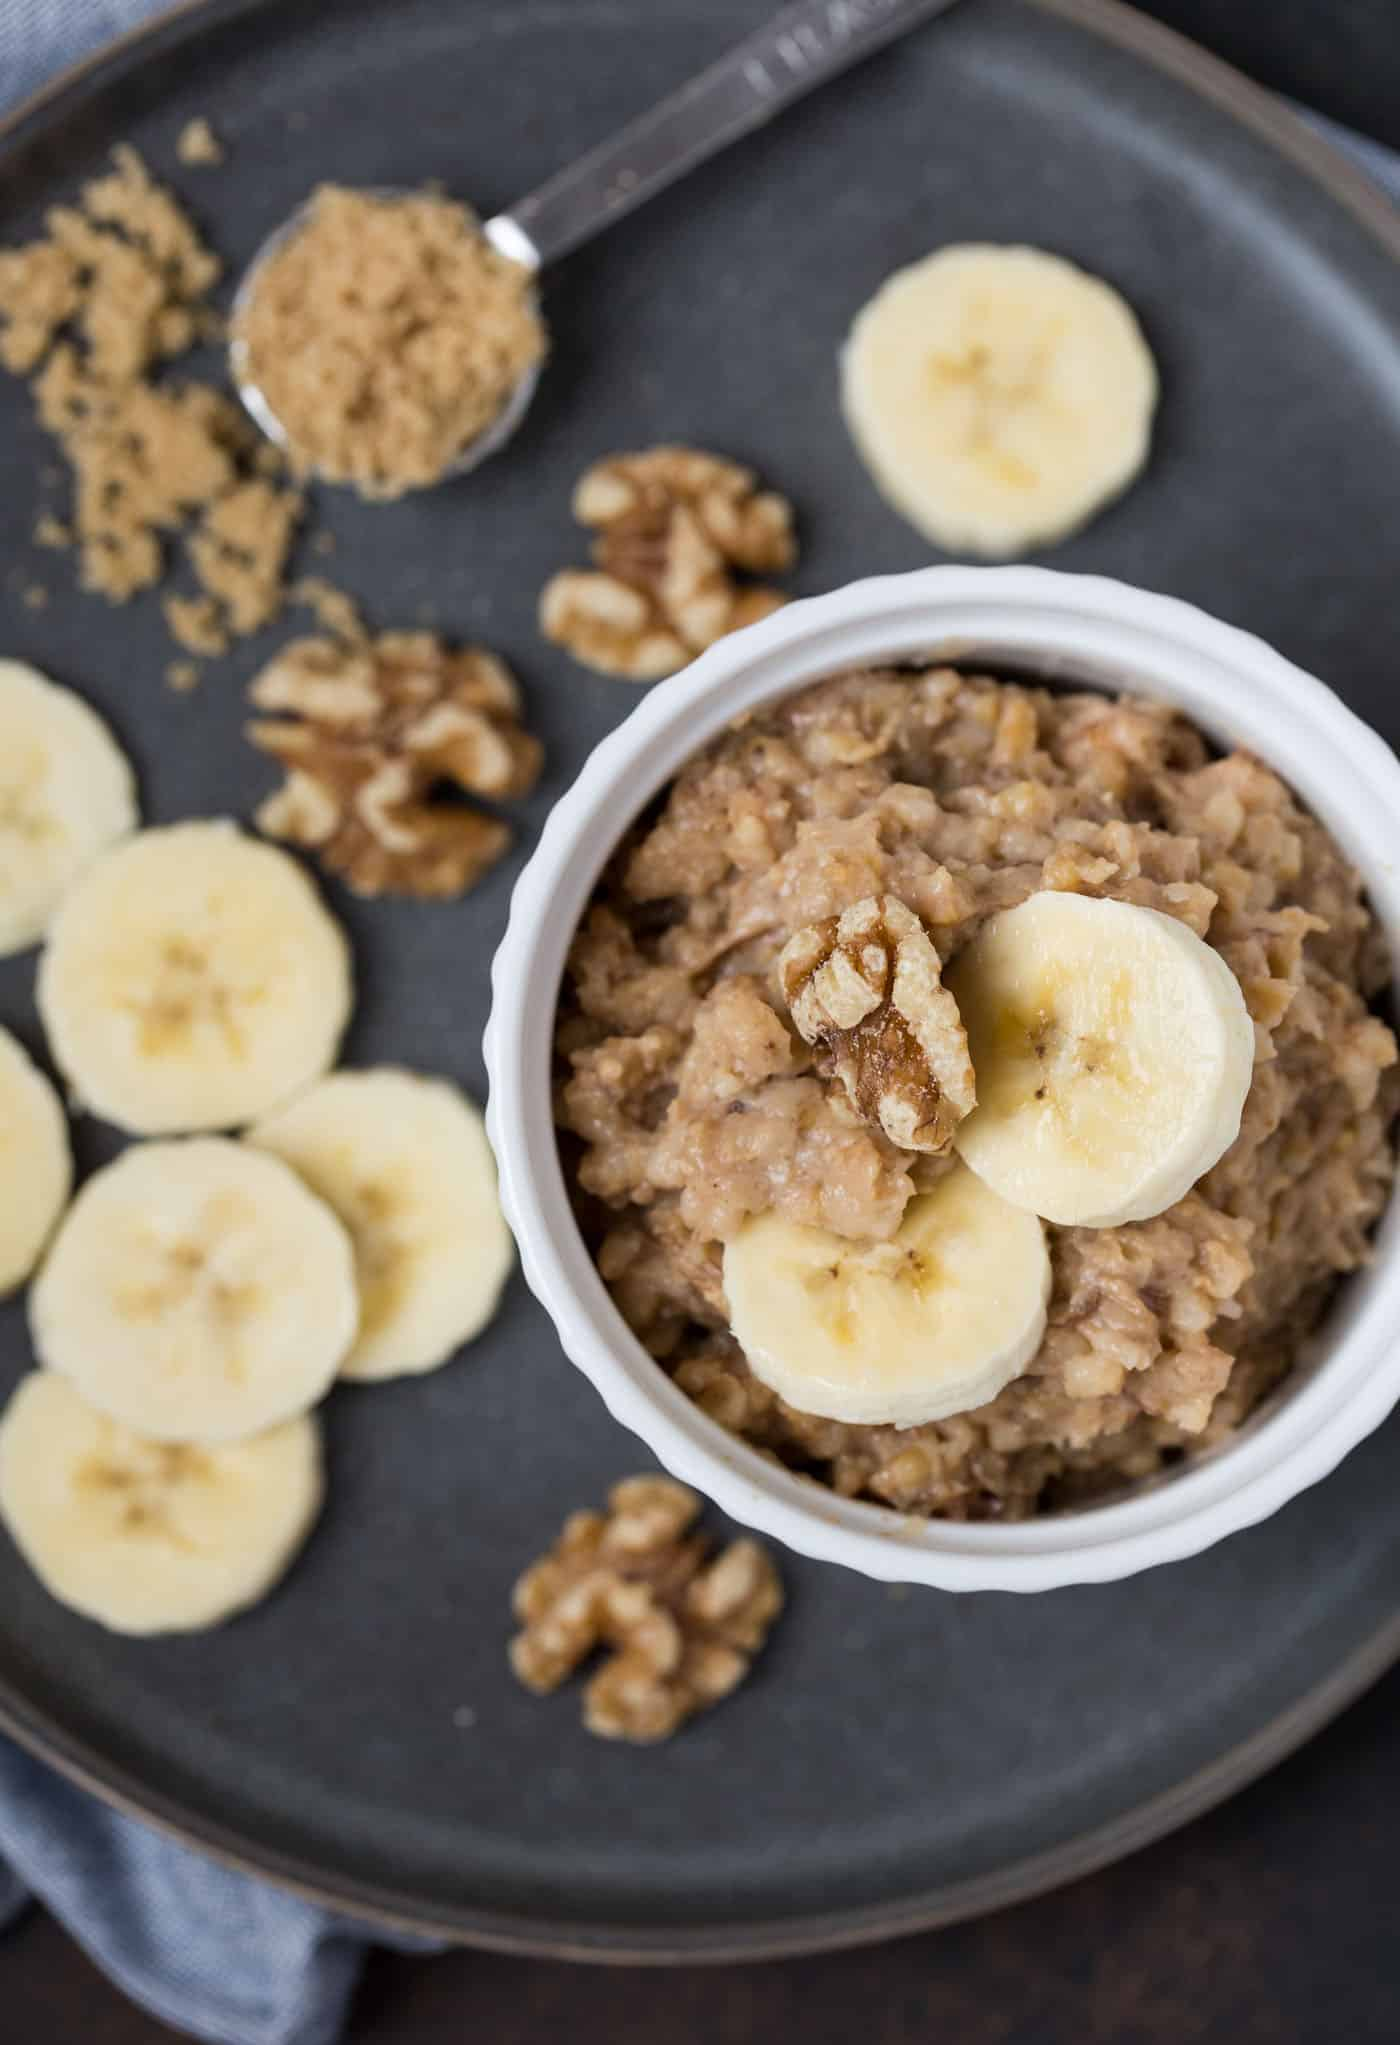 A bowl of oatmeal, with Banana and Oats.